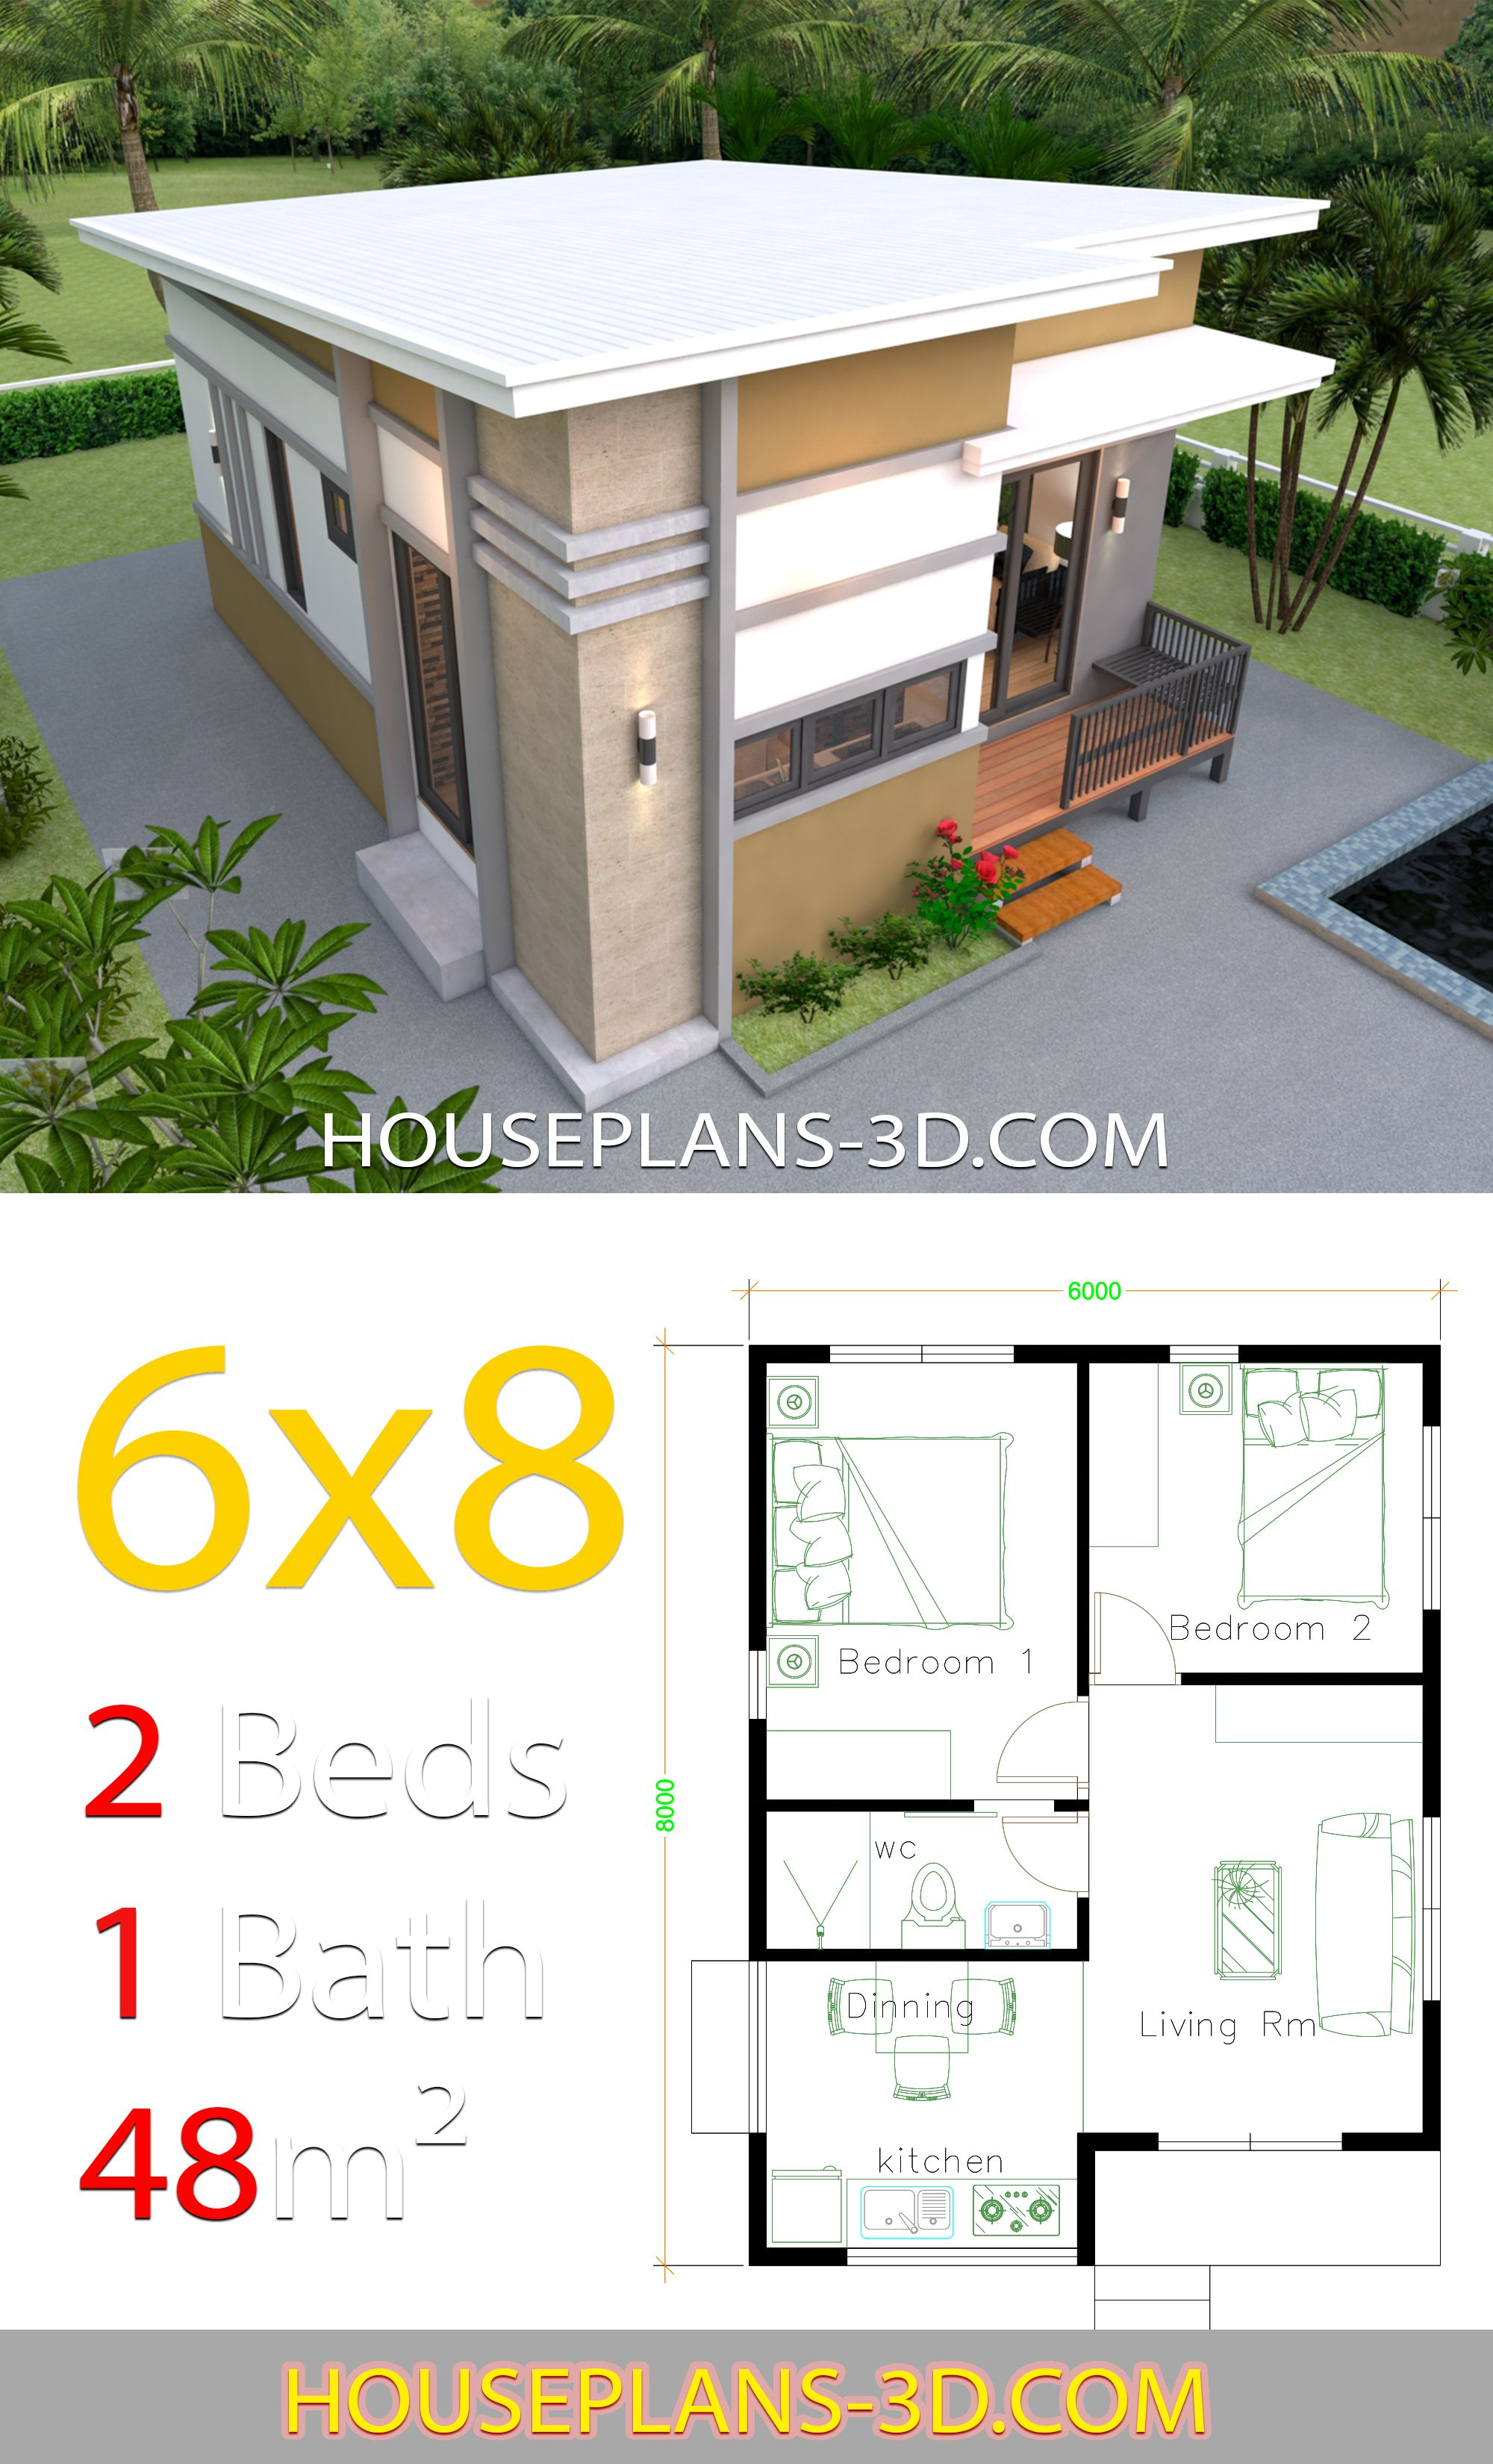 House Design 6x8 With 2 Bedrooms House Plans 3d Small House Design Plans Small House Design Simple House Plans